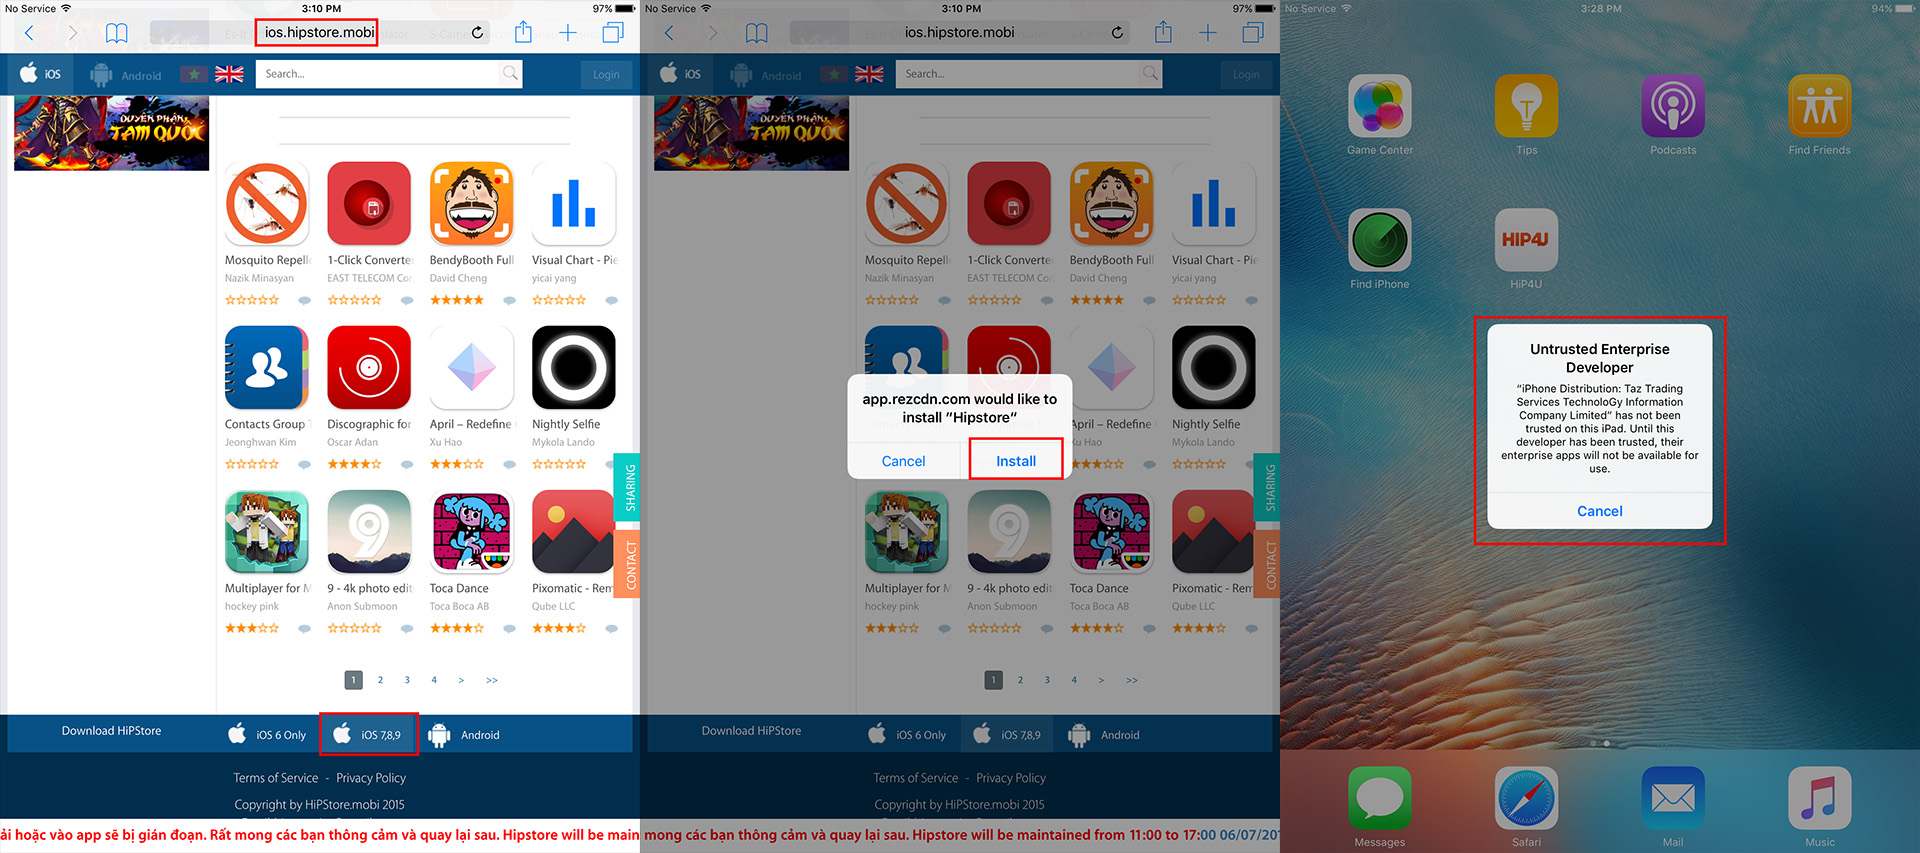 Install Apps Without Apple ID